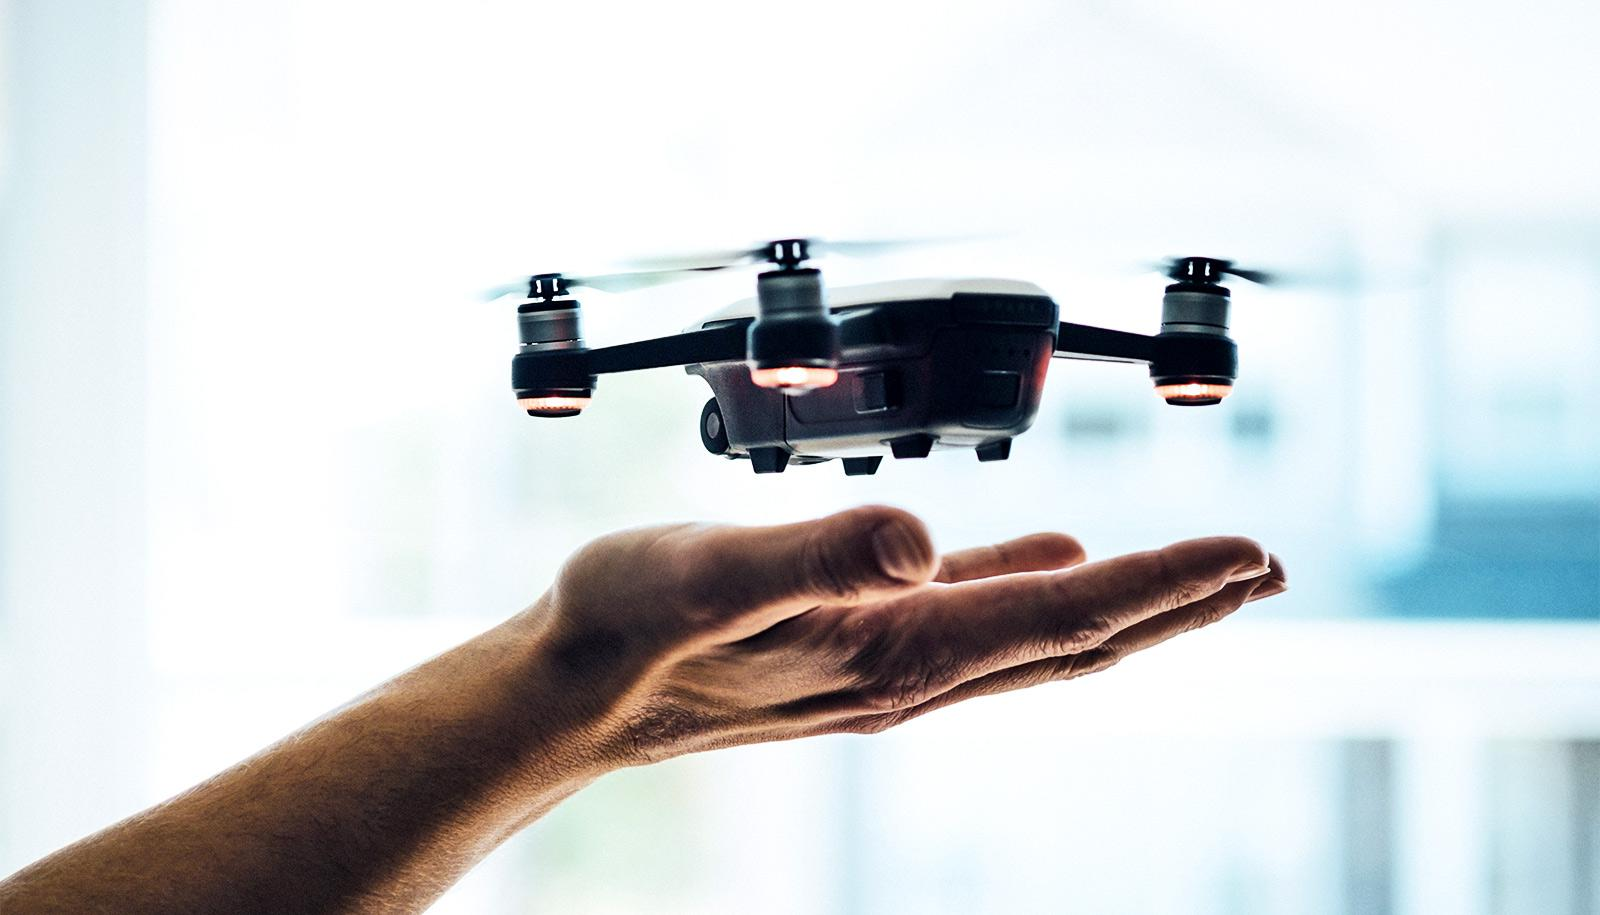 drone hovering over hands